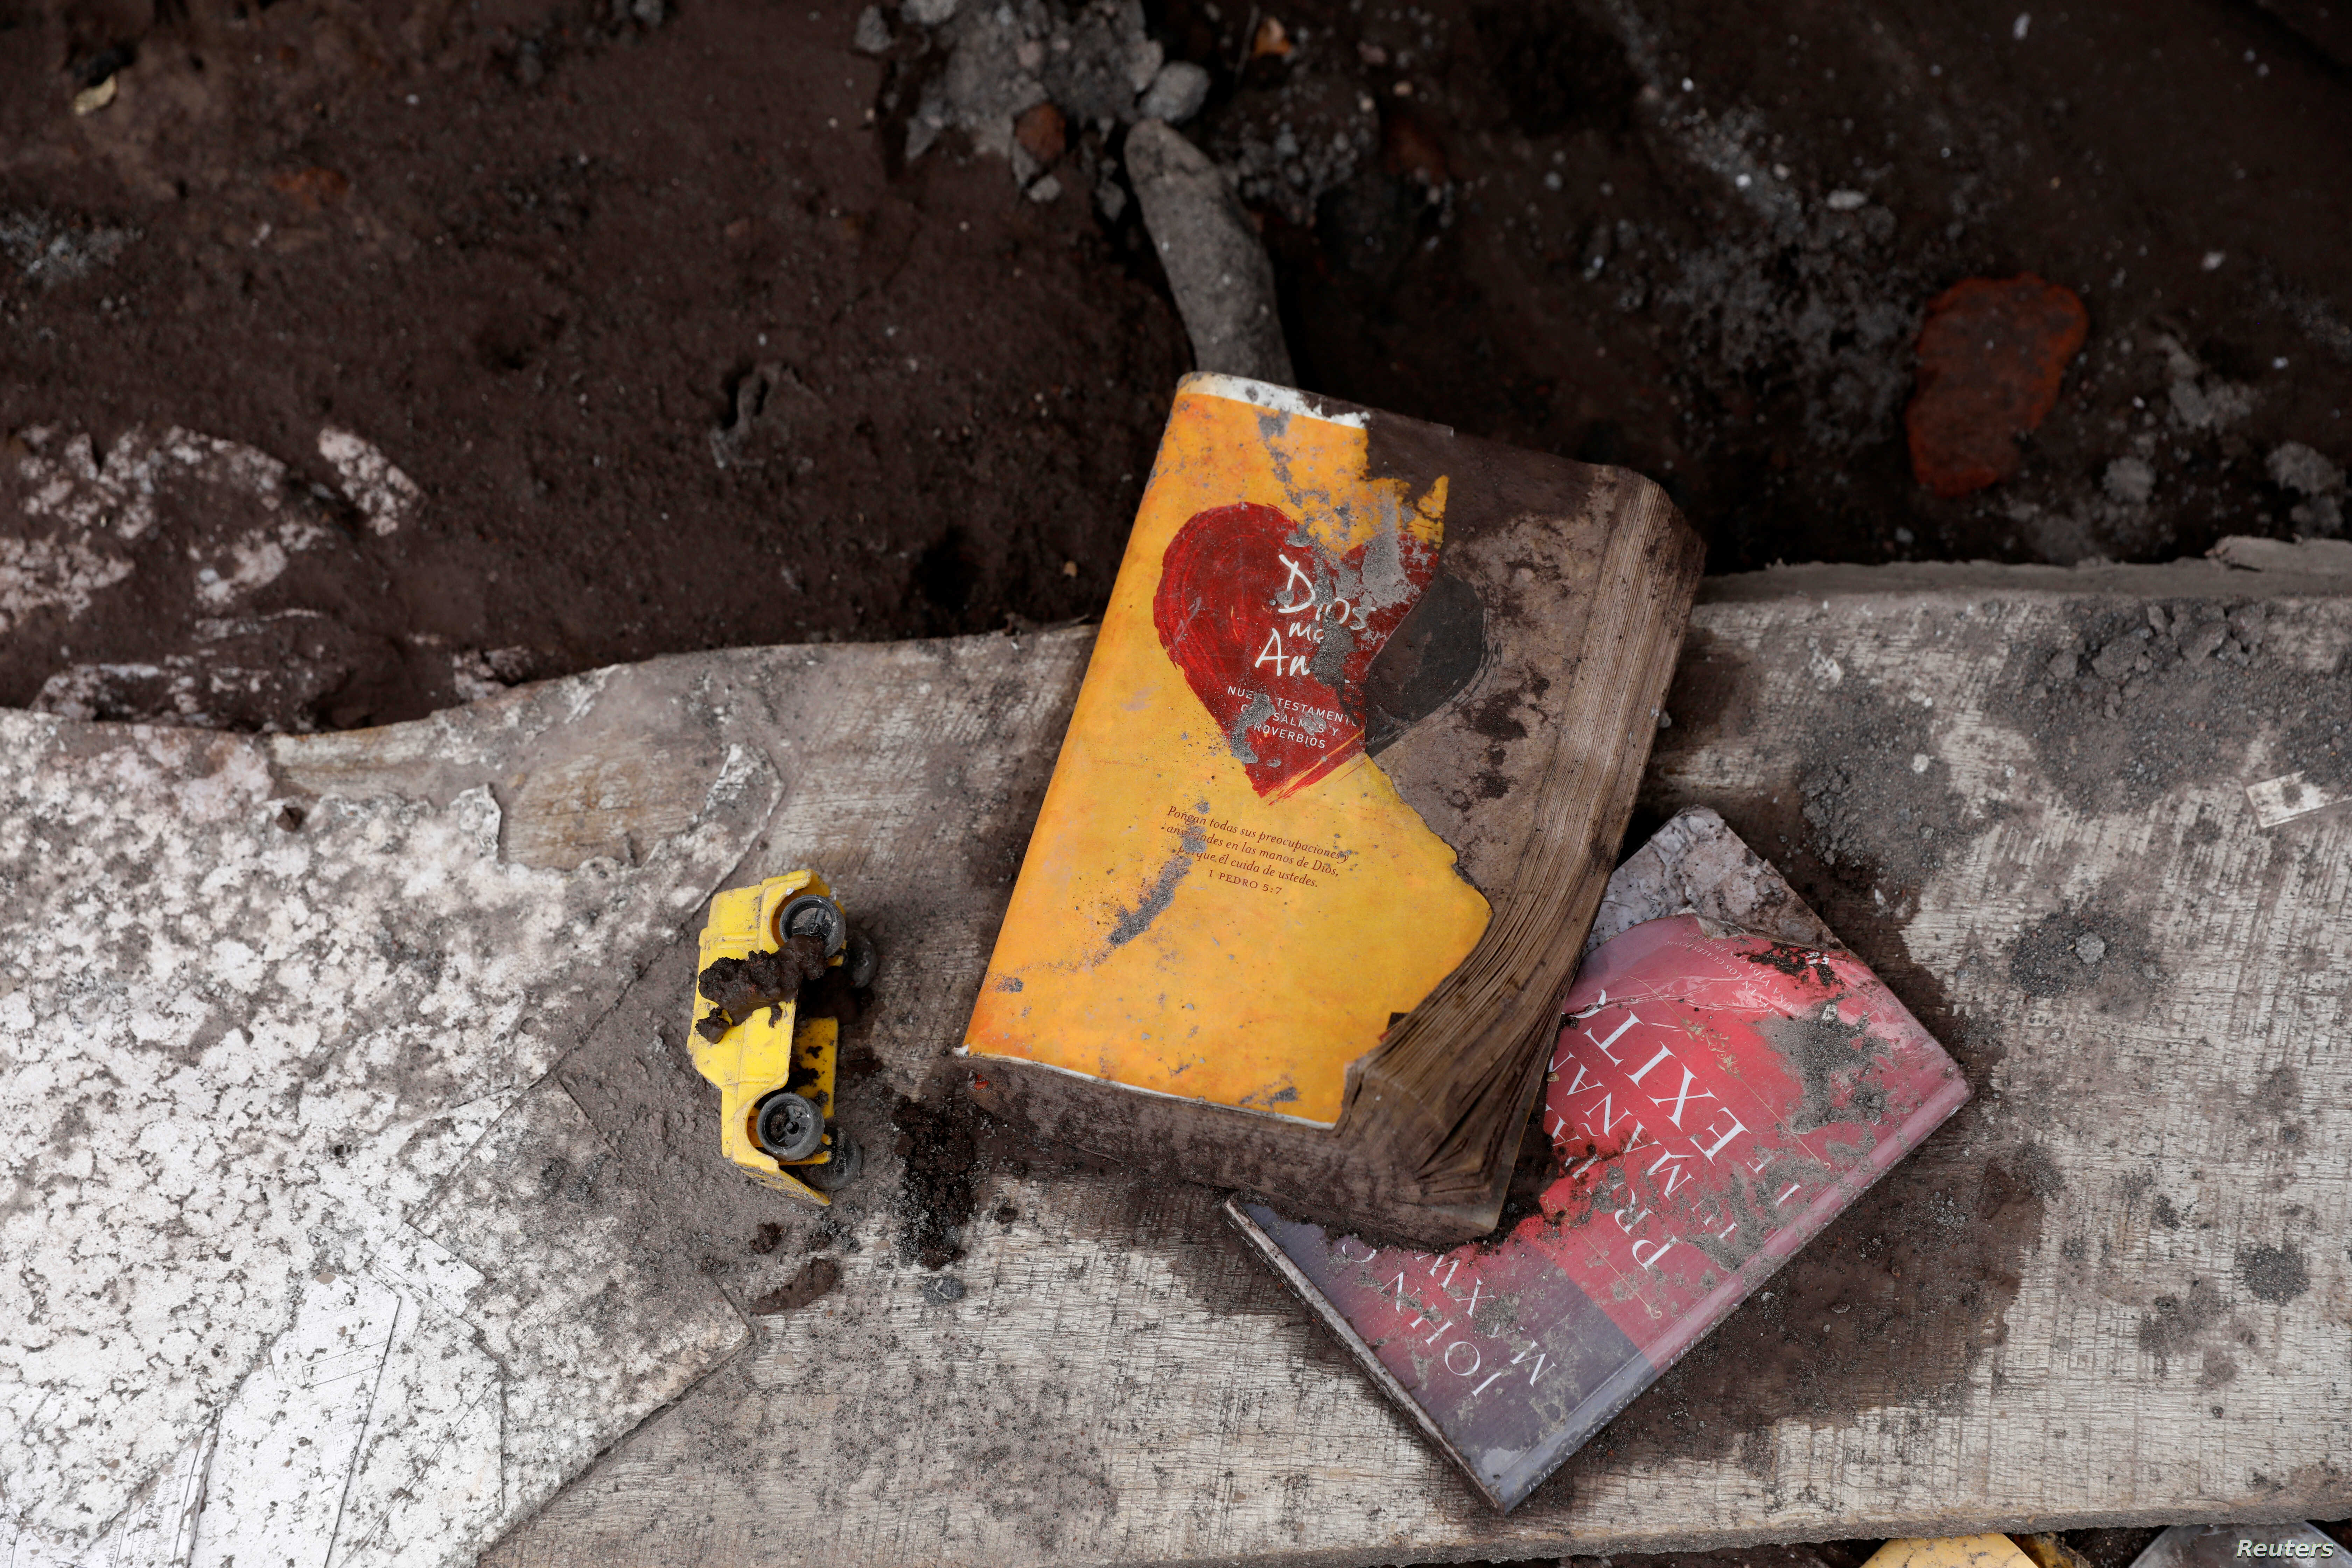 Books and a toy lie on the ground at a house affected by the eruption of the Fuego volcano in San Miguel Los Lotes in Escuintla, Guatemala, June 8, 2018.